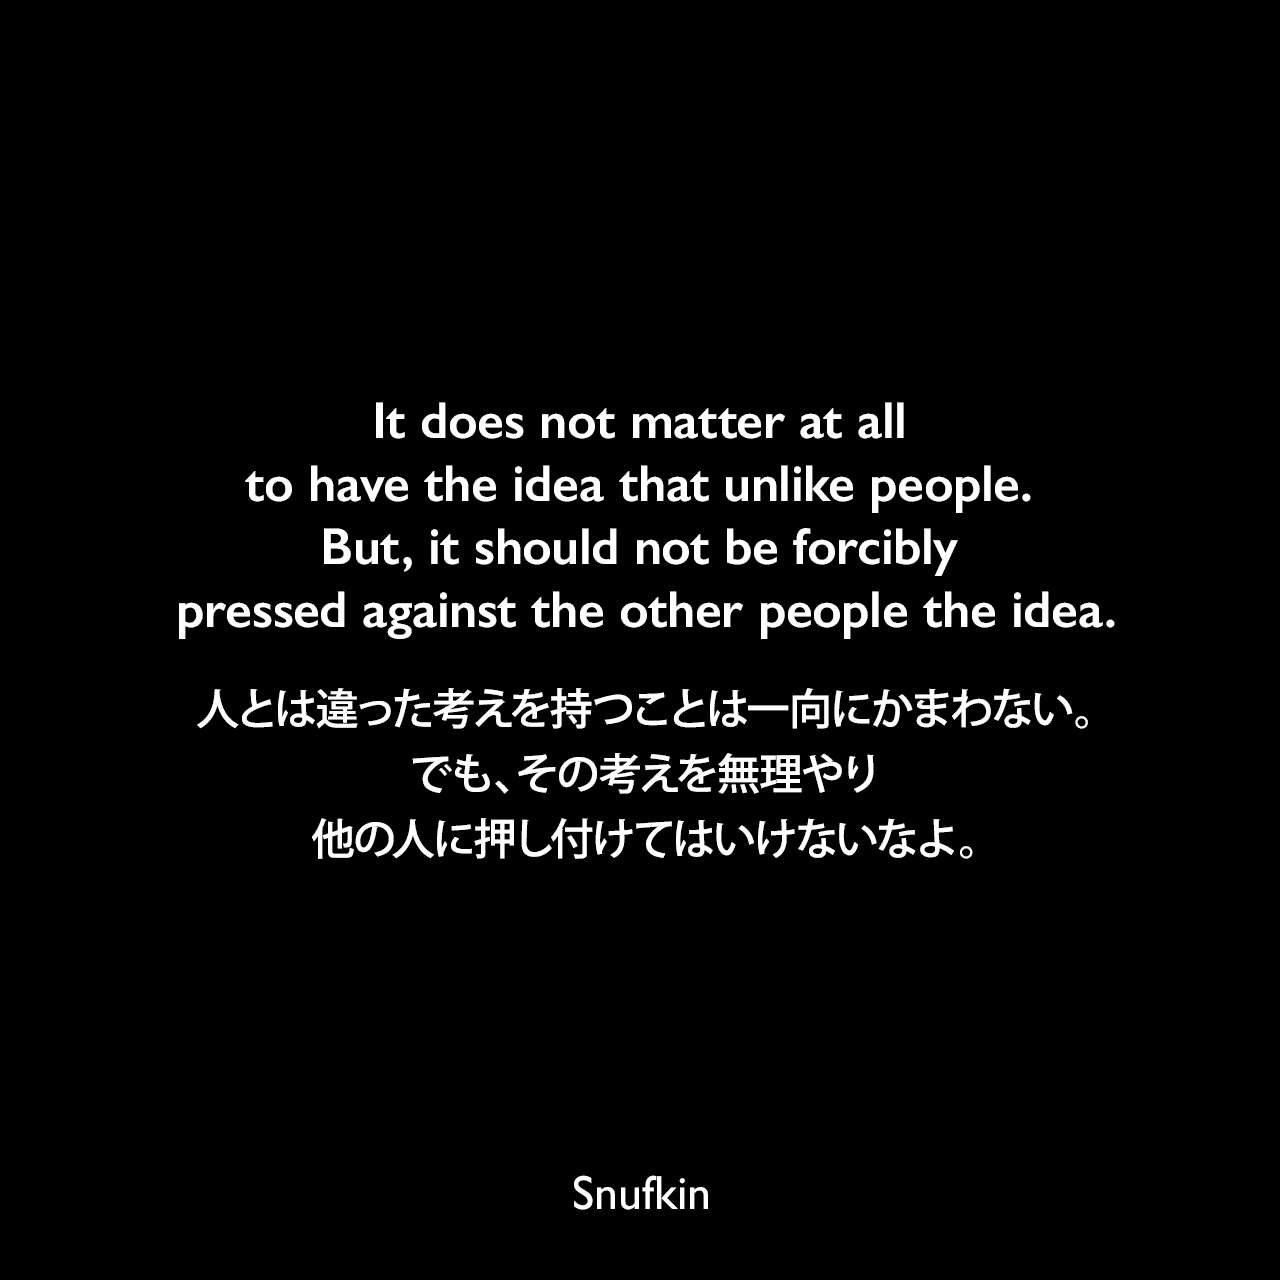 It does not matter at all to have the idea that unlike people. But, it should not be forcibly pressed against the other people the idea.人とは違った考えを持つことは一向にかまわない。でも、その考えを無理やり他の人に押し付けてはいけないなよ。Snufkin